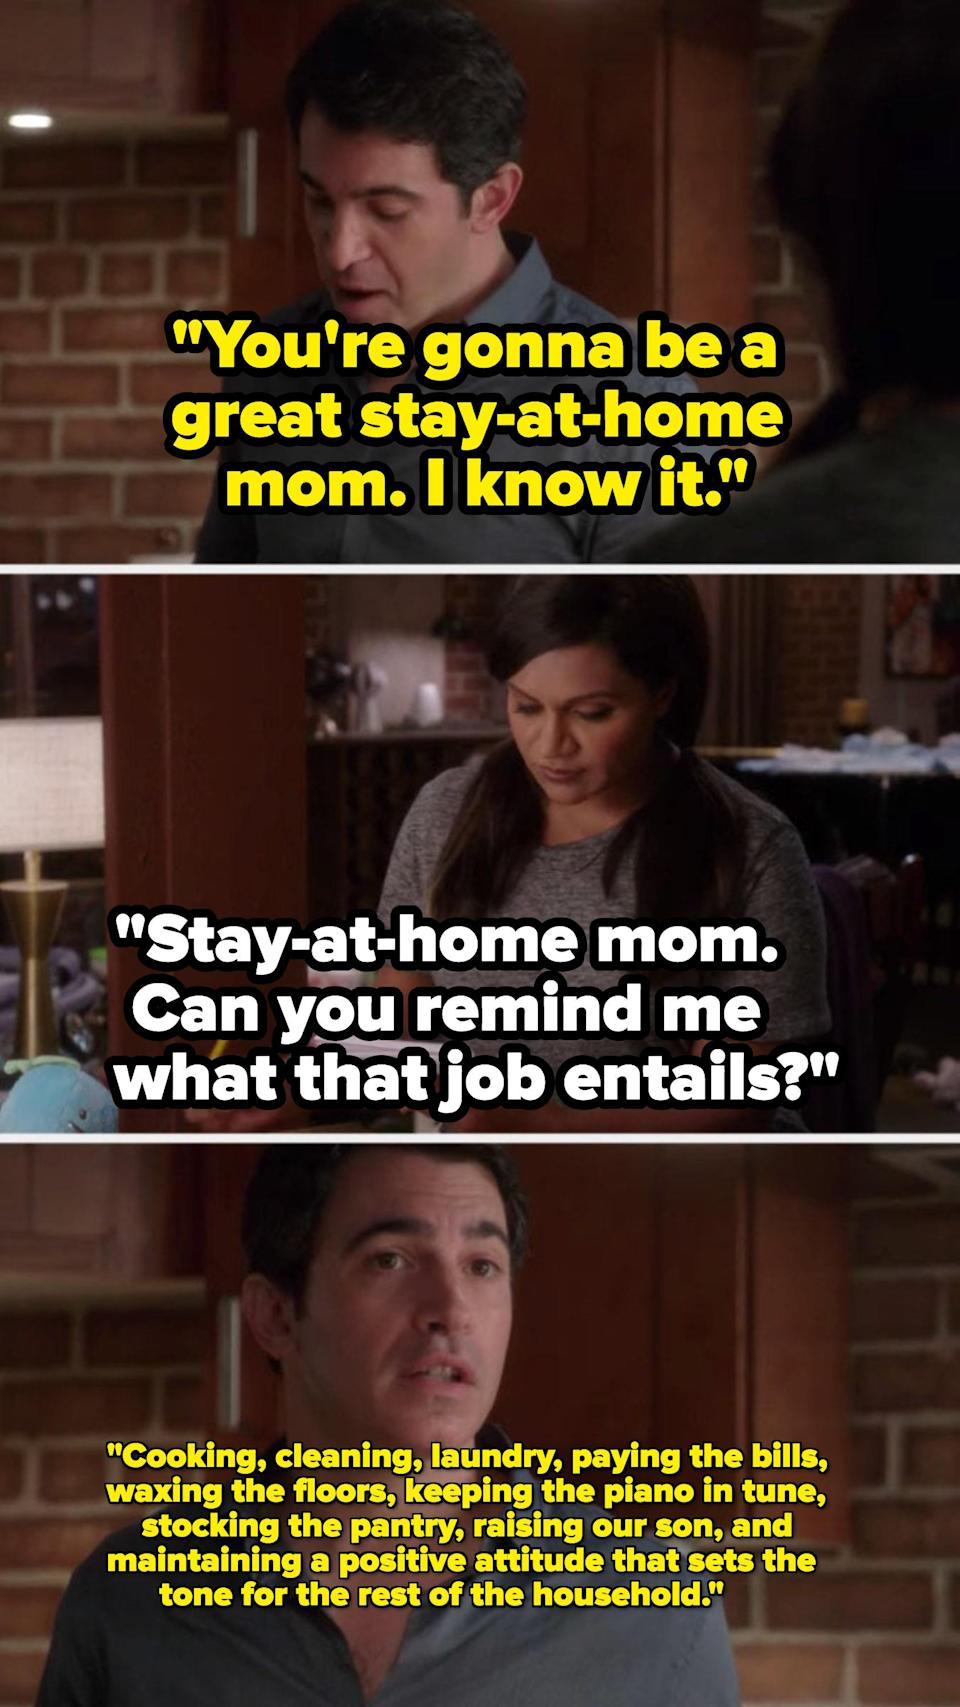 Danny telling Mindy that she has to cook, clean, and raise their son while he works